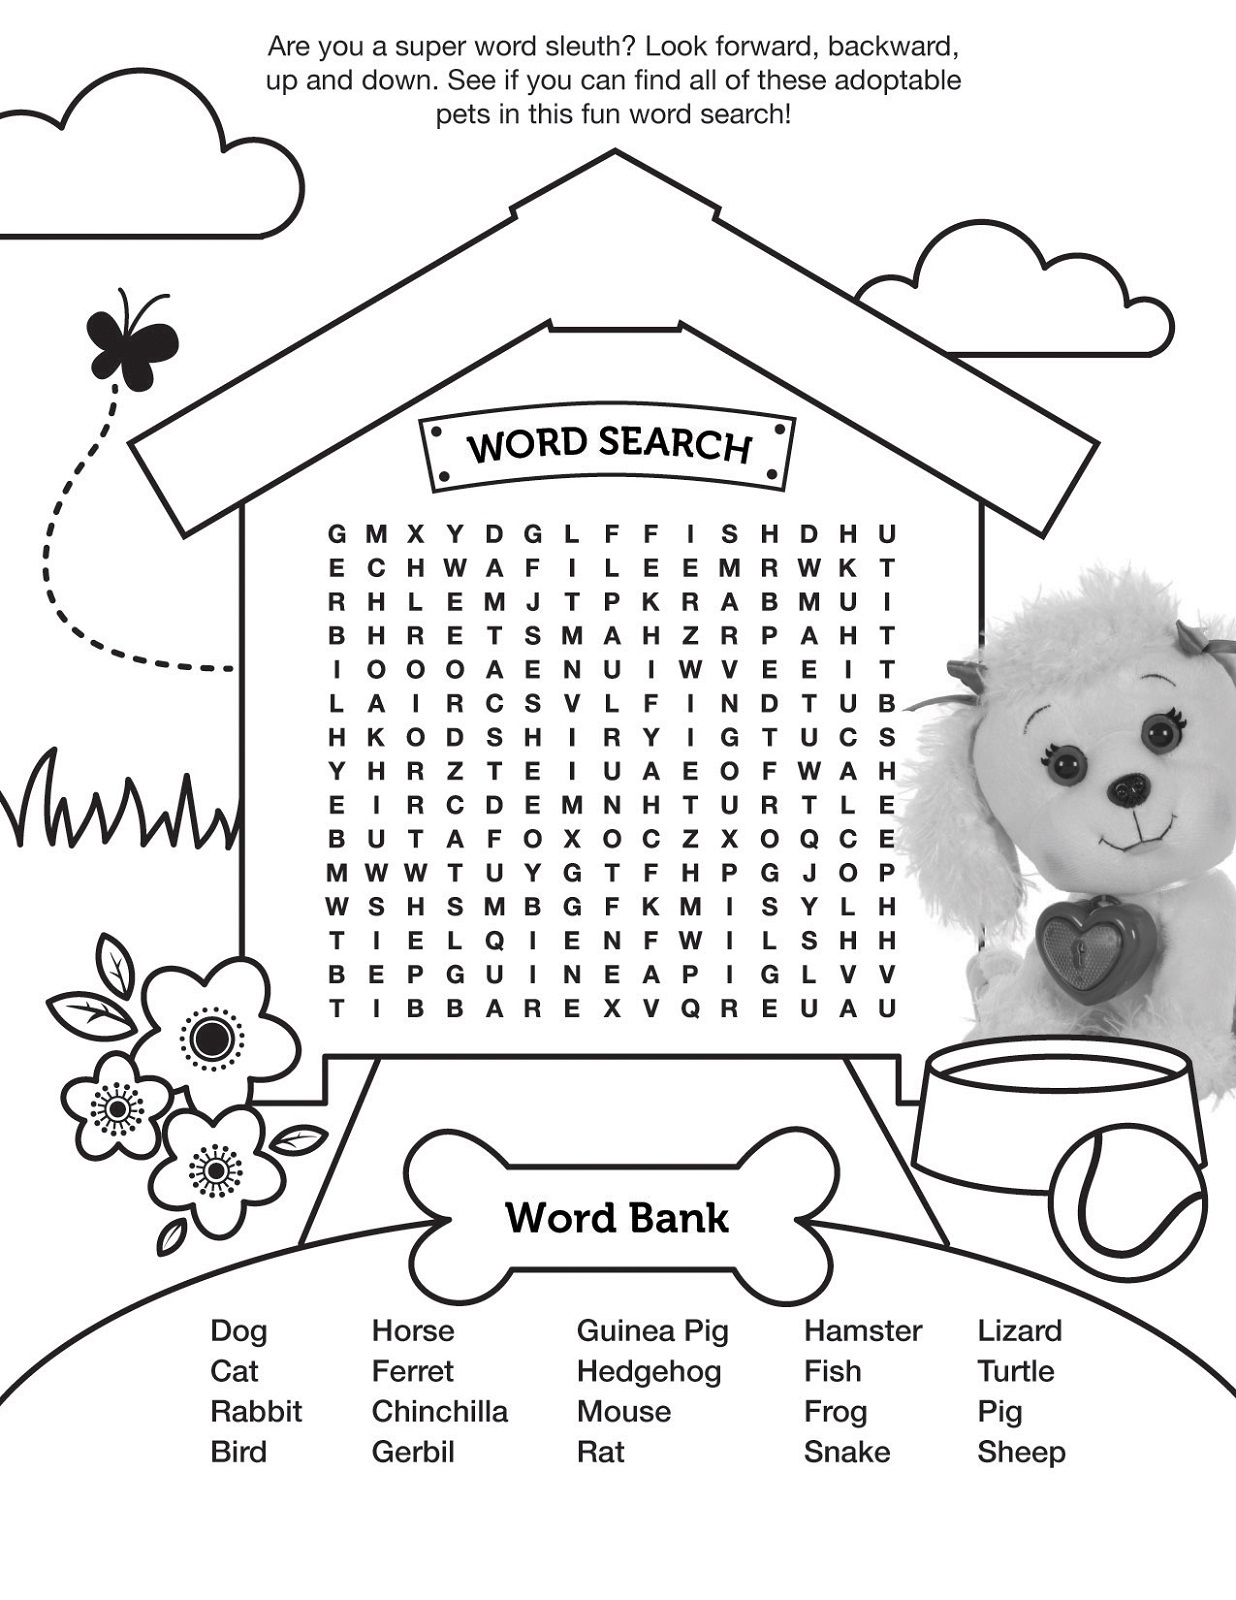 pet word search activity